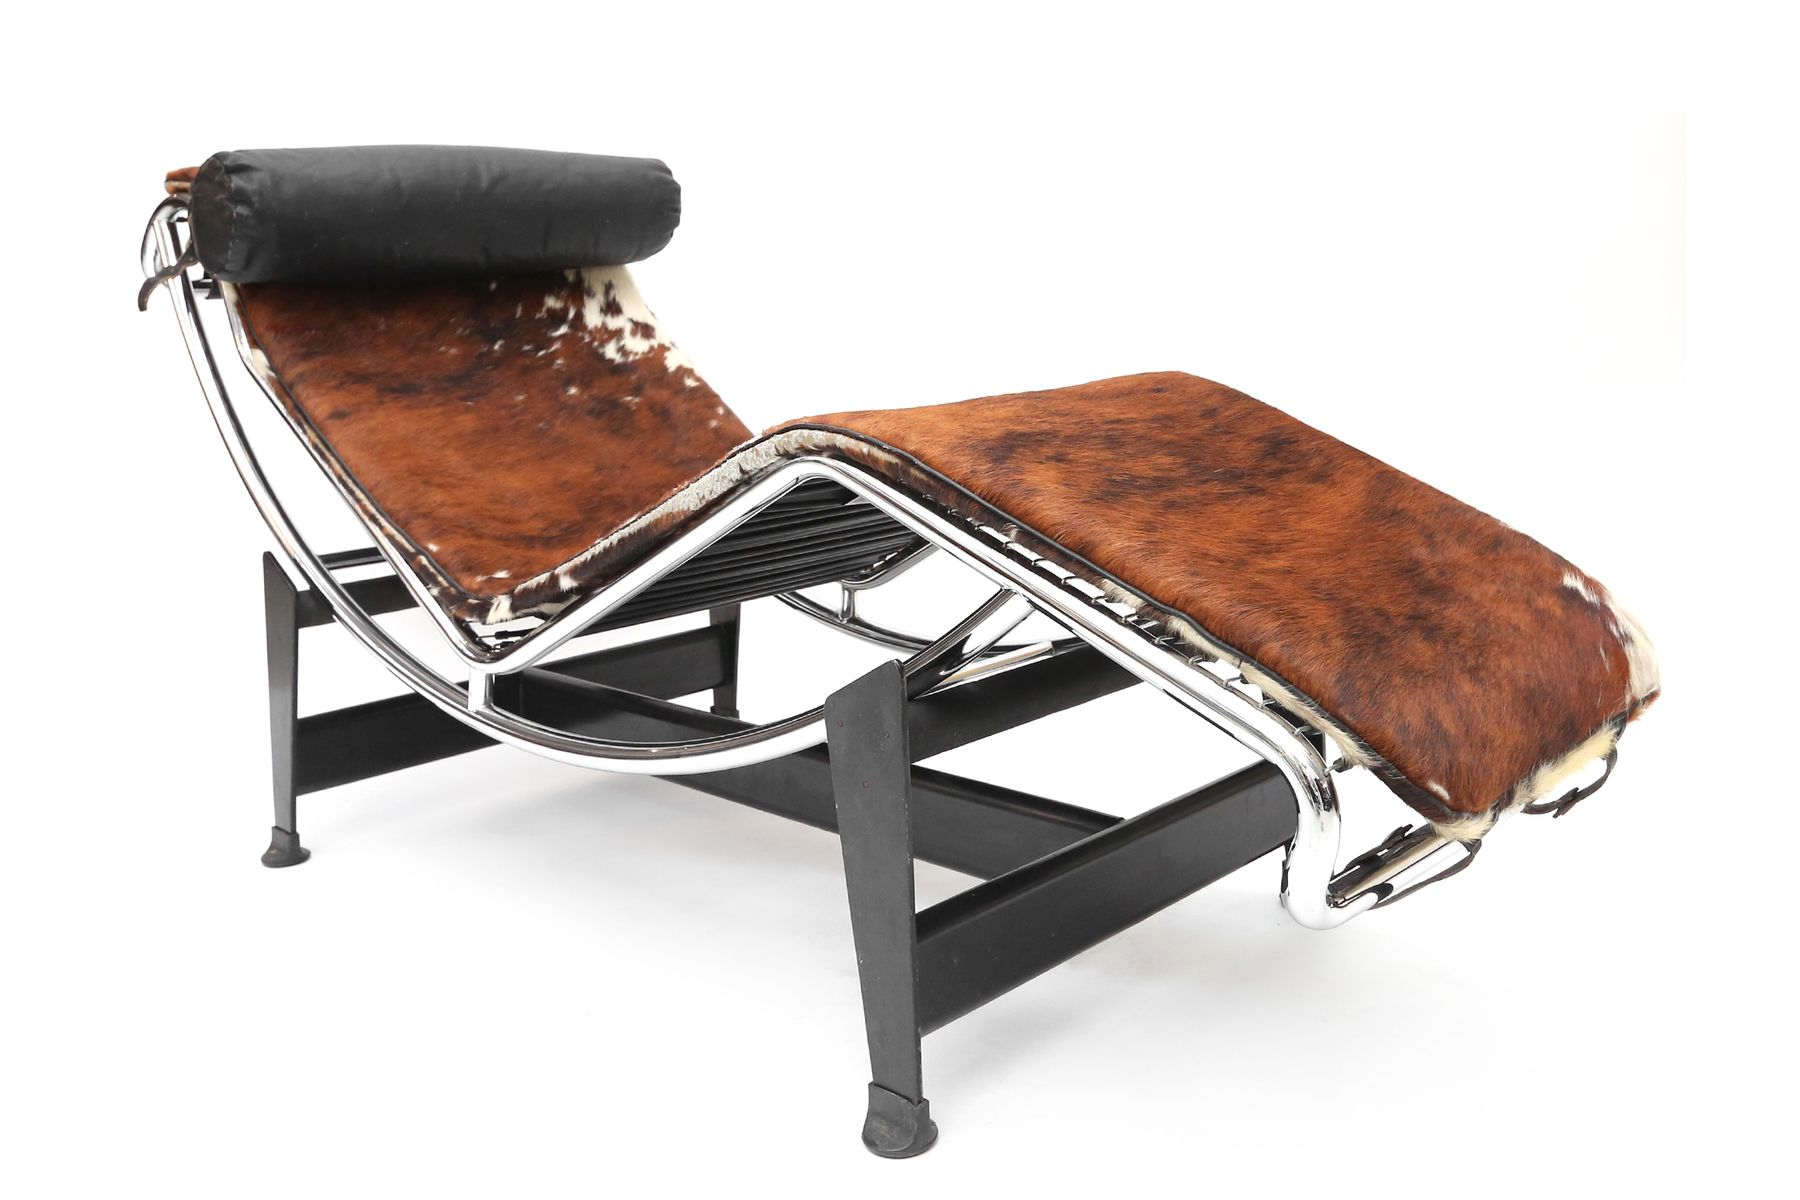 Vintage corbusier chair - Vintage Lc 4 Chaise Lounge By Le Corbusier Jeanneret Perriand For Cassina